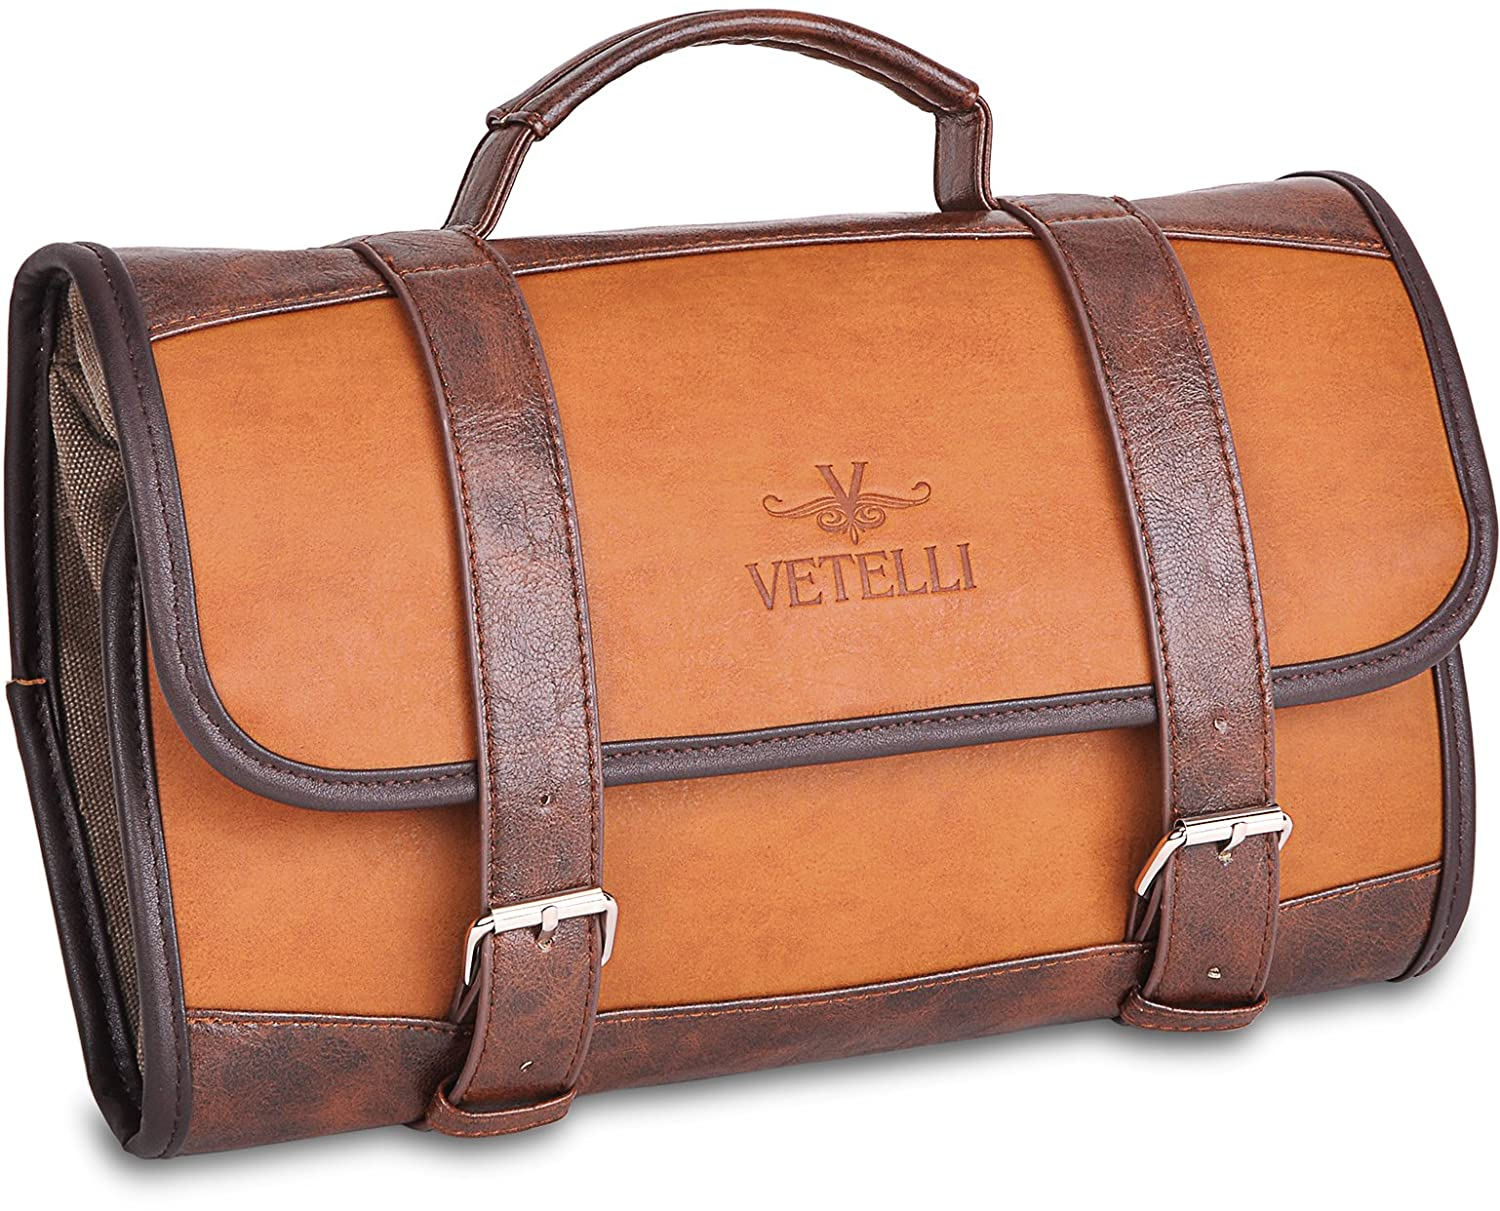 03efb0820c77 Amazon.com  Vetelli Hanging Toiletry Bag for Men - Dopp Kit Travel  Accessories Bag Great Gift  LSB-Products